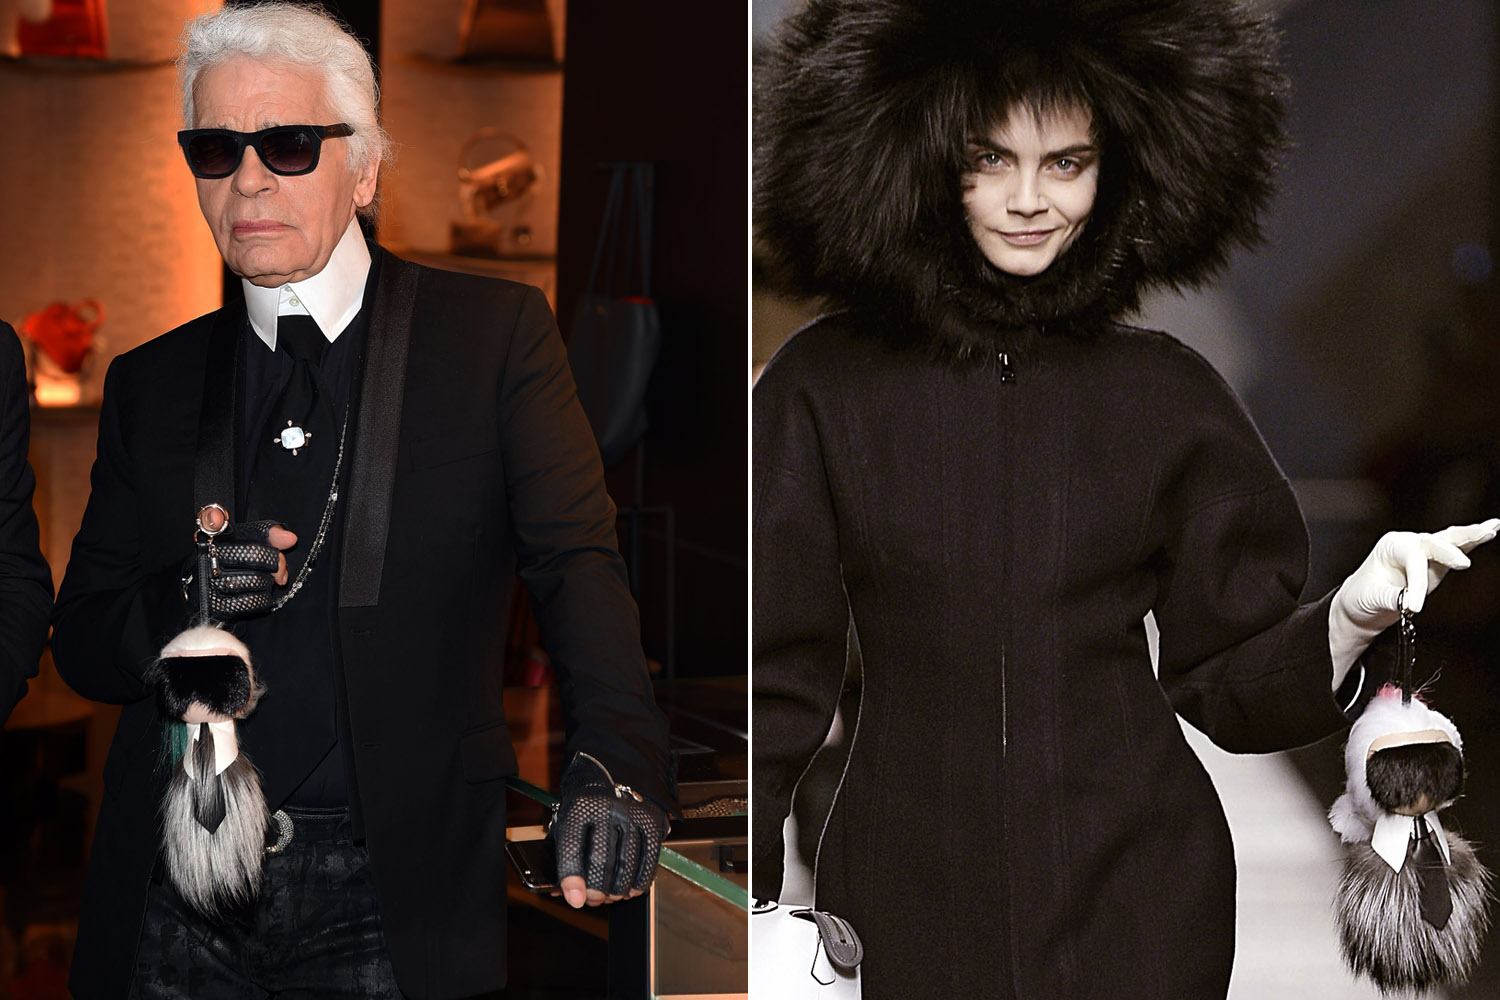 Tribute to Karl Lagerfeld, Defender of Fine Crafstmanship - Fendi Karlito karl lagerfeld Karl Lagerfeld Legacy: a Tribute to Métiers D'Art and Fine Crafts Tribute to Lagerfeld Defender of Fine Crafstmanship Fendi Karlito